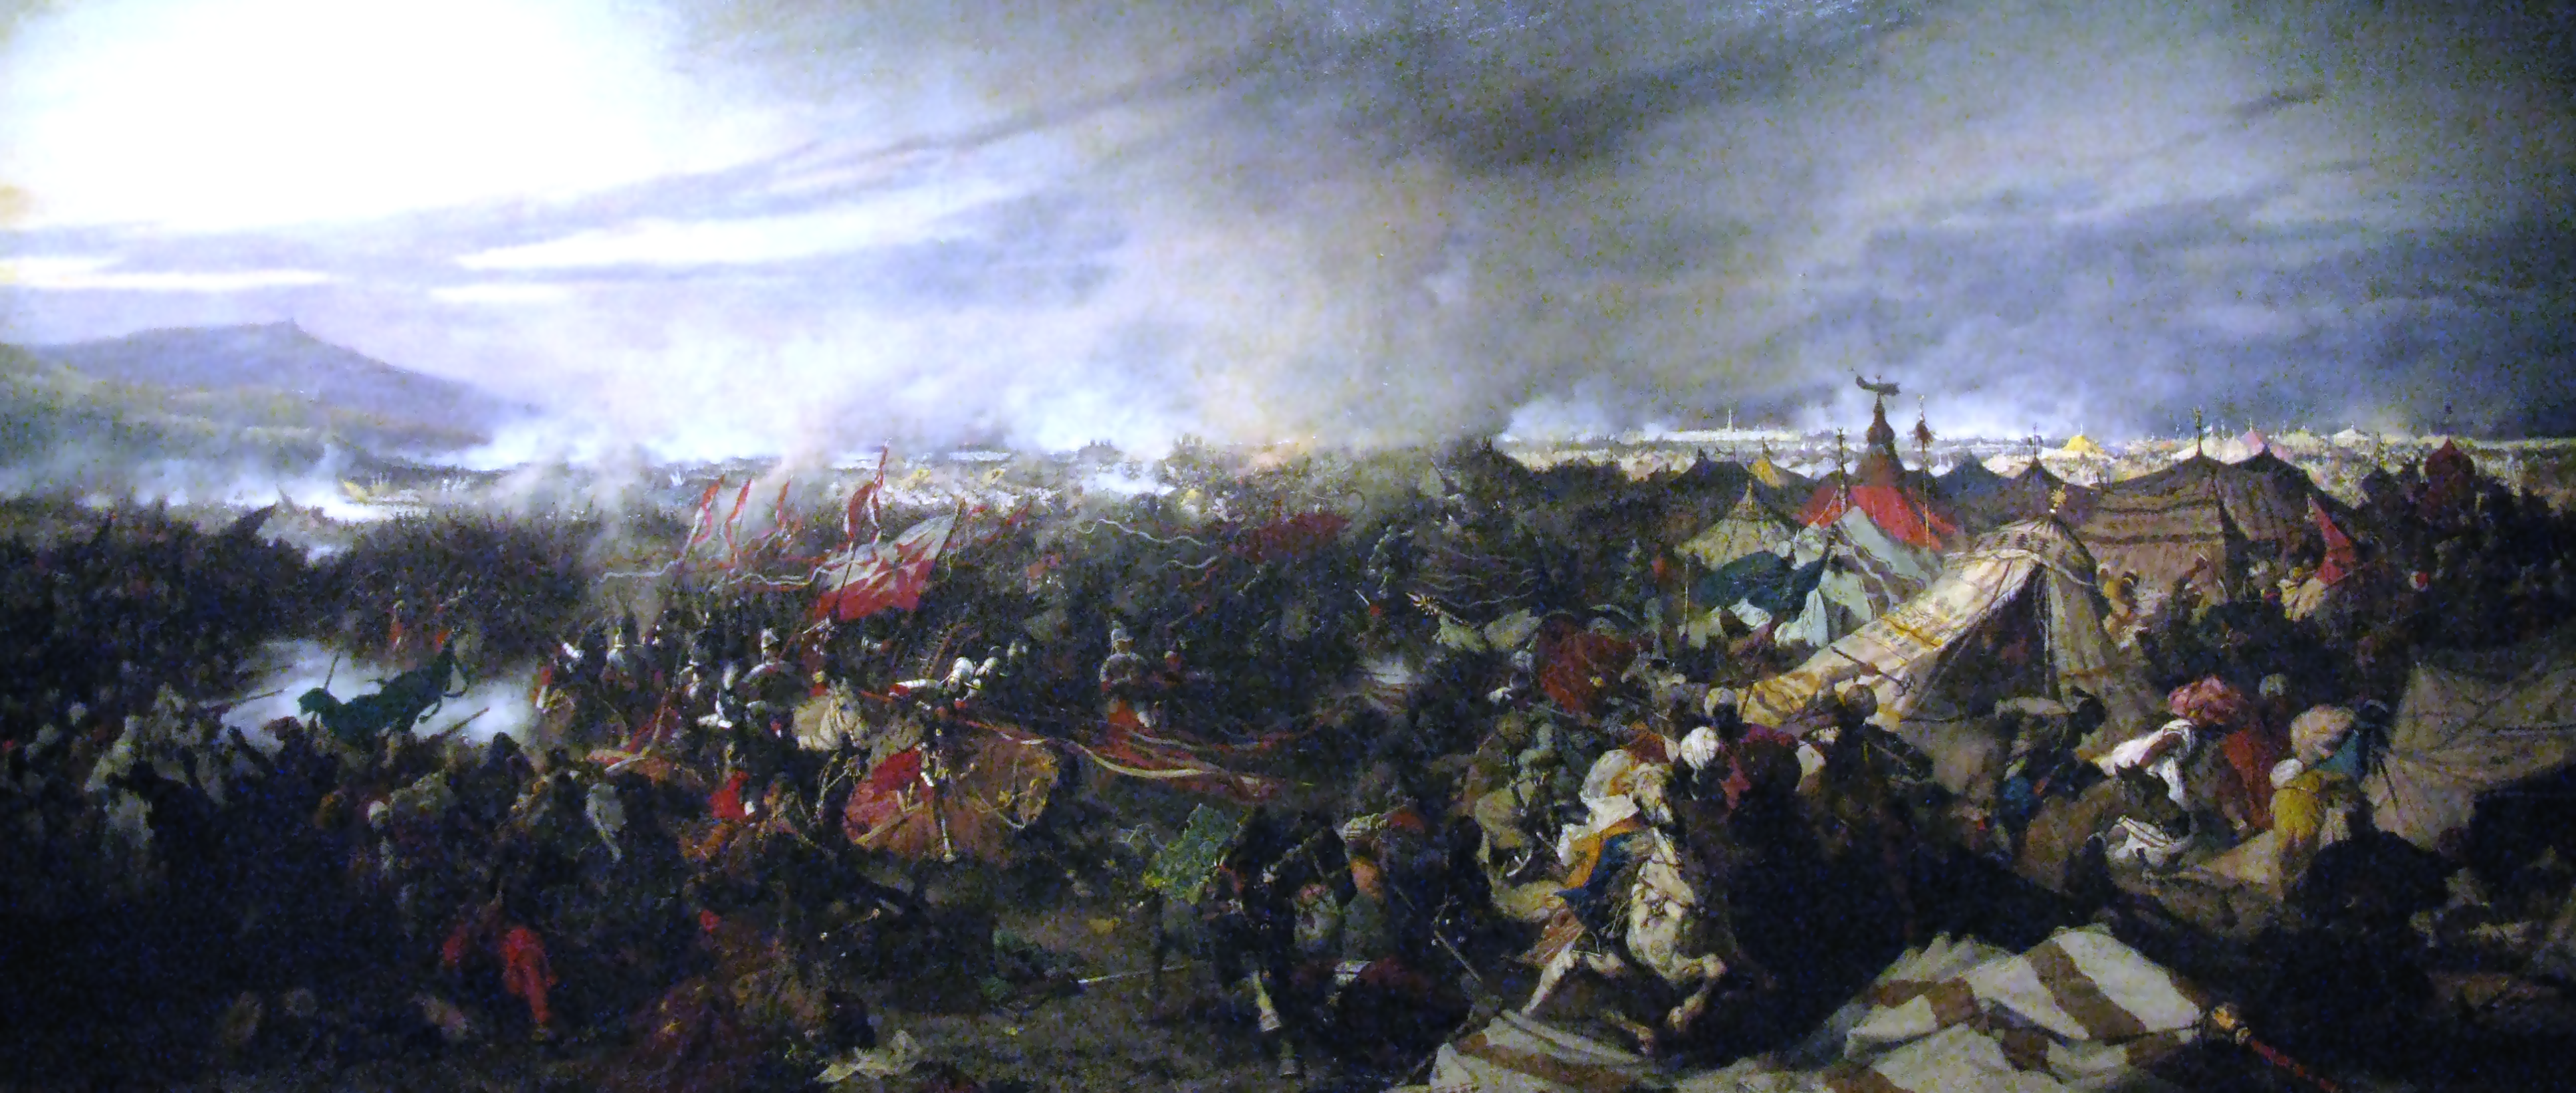 File:Battle of Vienna (1683) by Józef Brandt.PNG